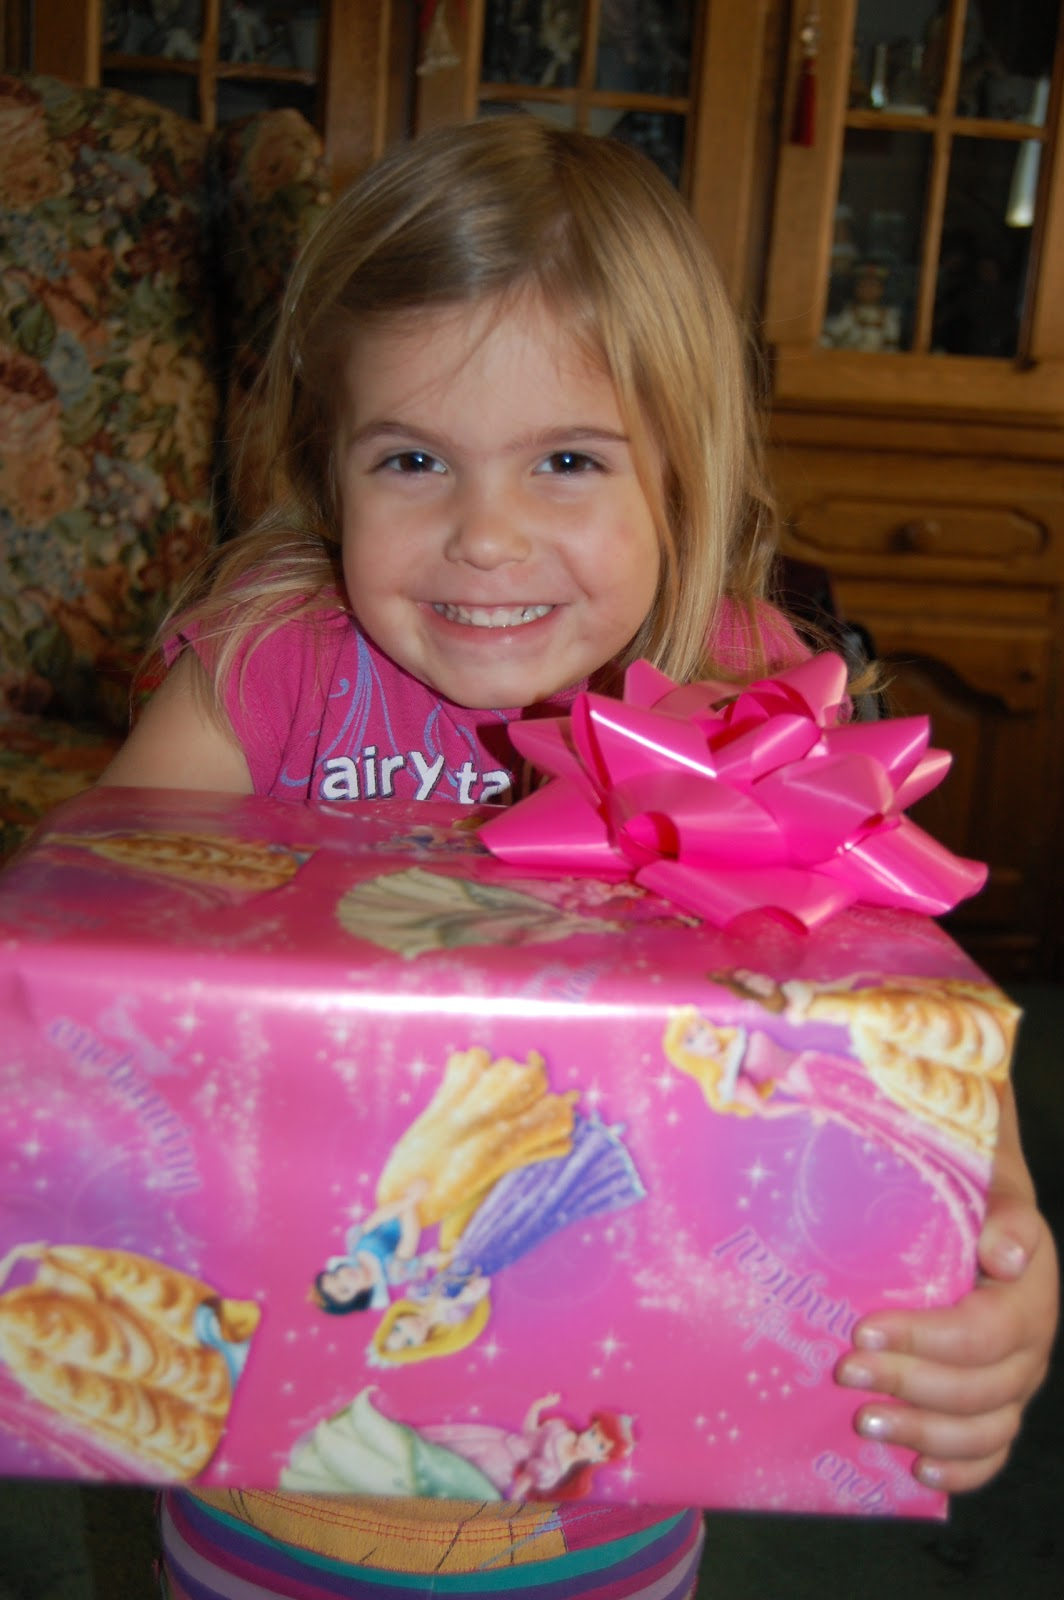 Nana Porcupine Youngest Granddaughter Turns 4 Years Old